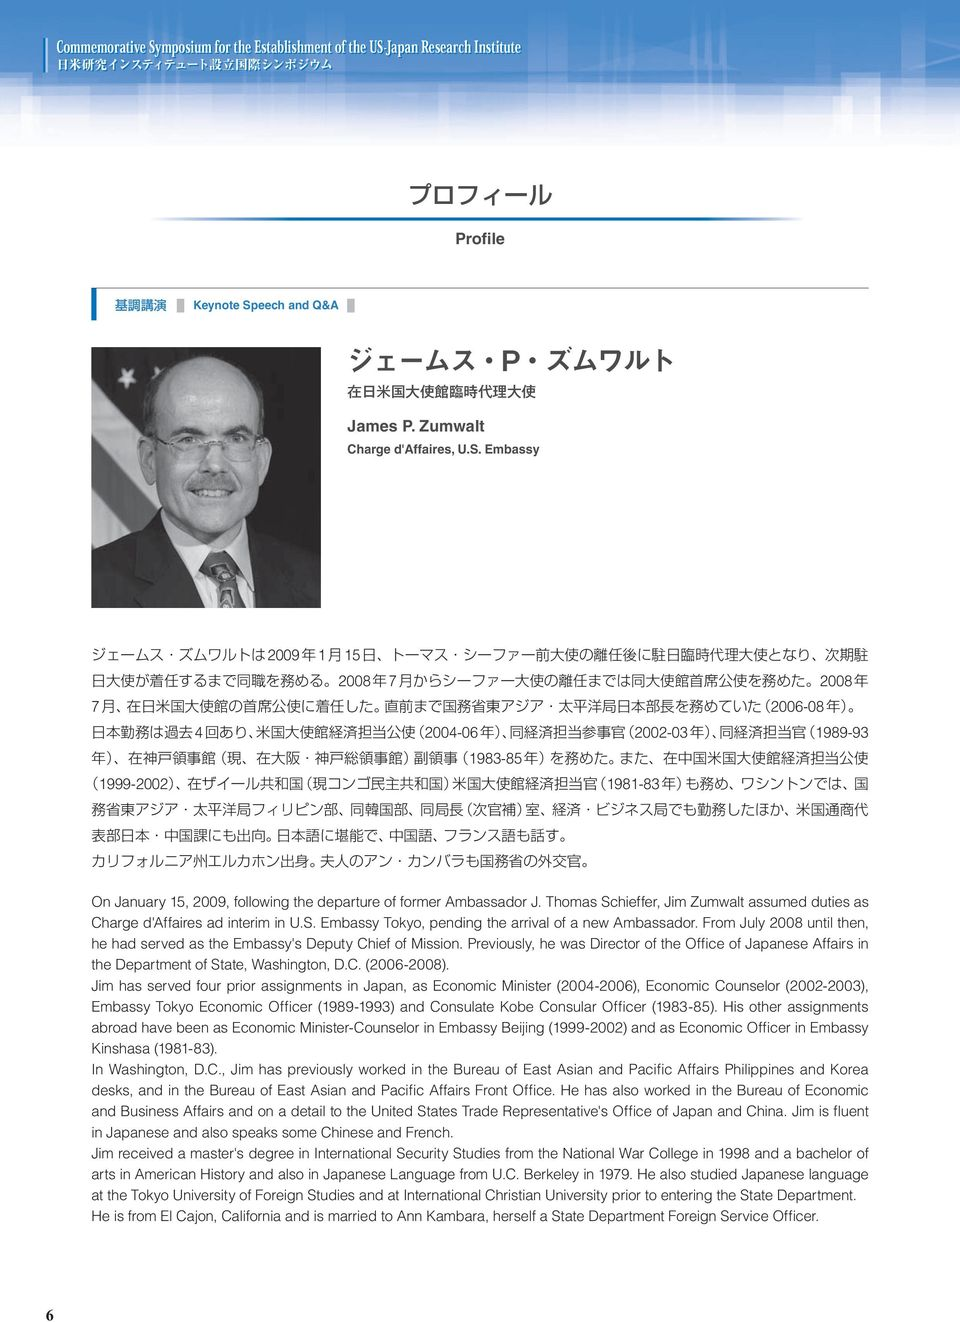 From July 2008 until then, he had served as the Embassy's Deputy Chief of Mission. Previously, he was Director of the Offi ce of Japanese Affairs in the Department of State, Washington, D.C. (2006-2008).